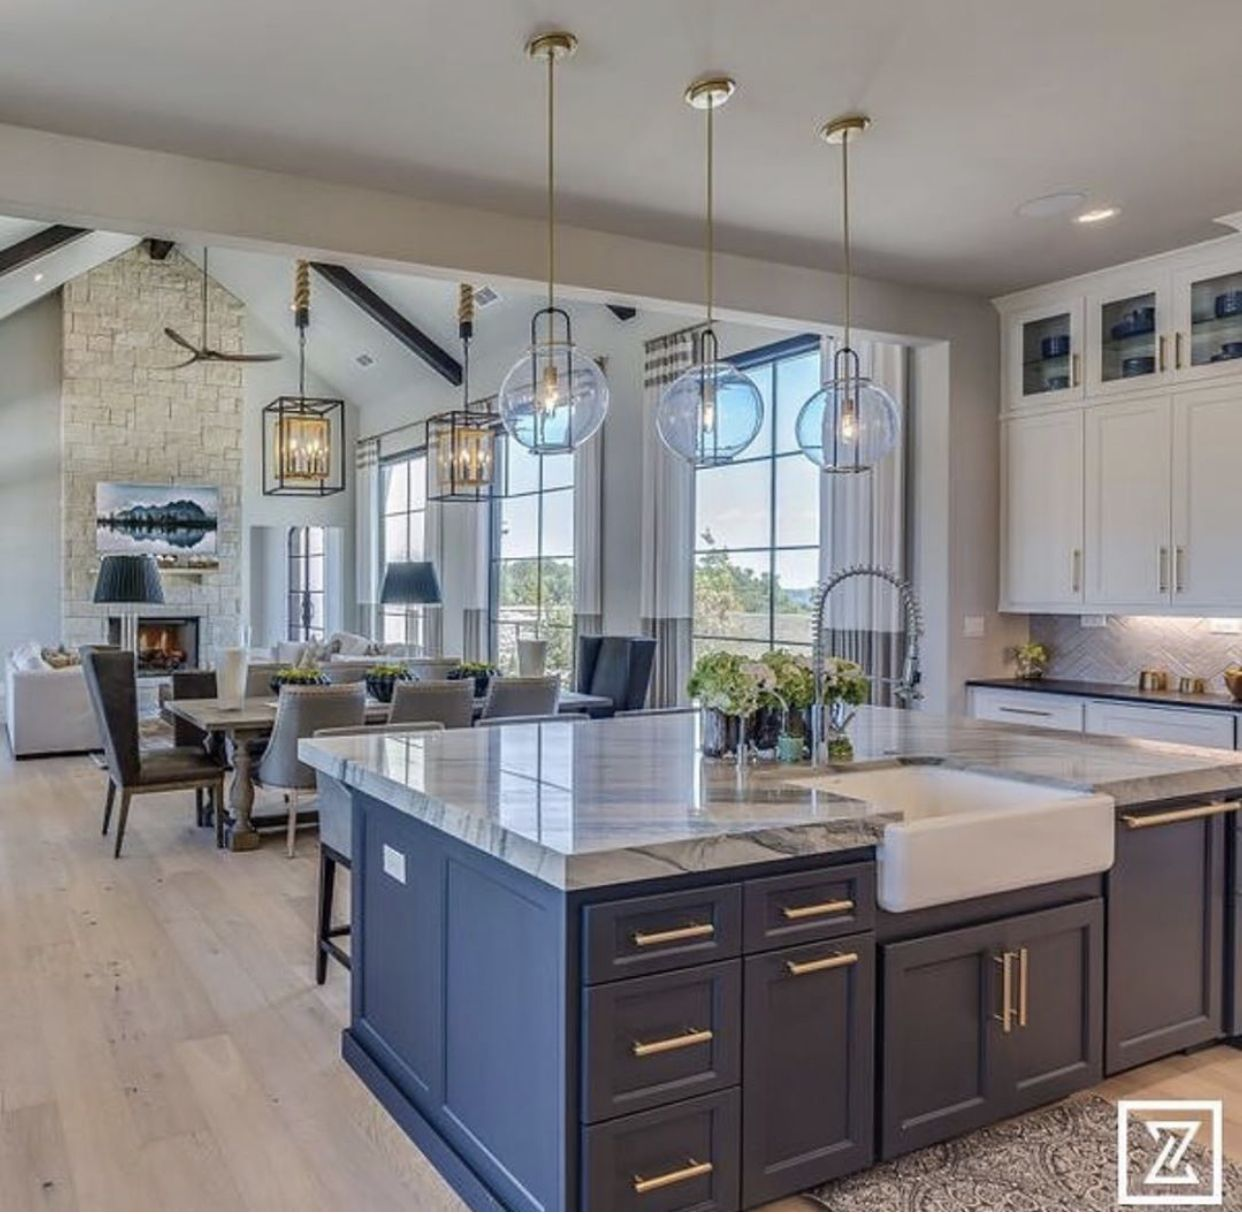 How I Picture The Kitchen Opening Up Into The Living Room Facing Fi Open Concept Kitchen Living Room Open Kitchen And Living Room Open Plan Kitchen Living Room